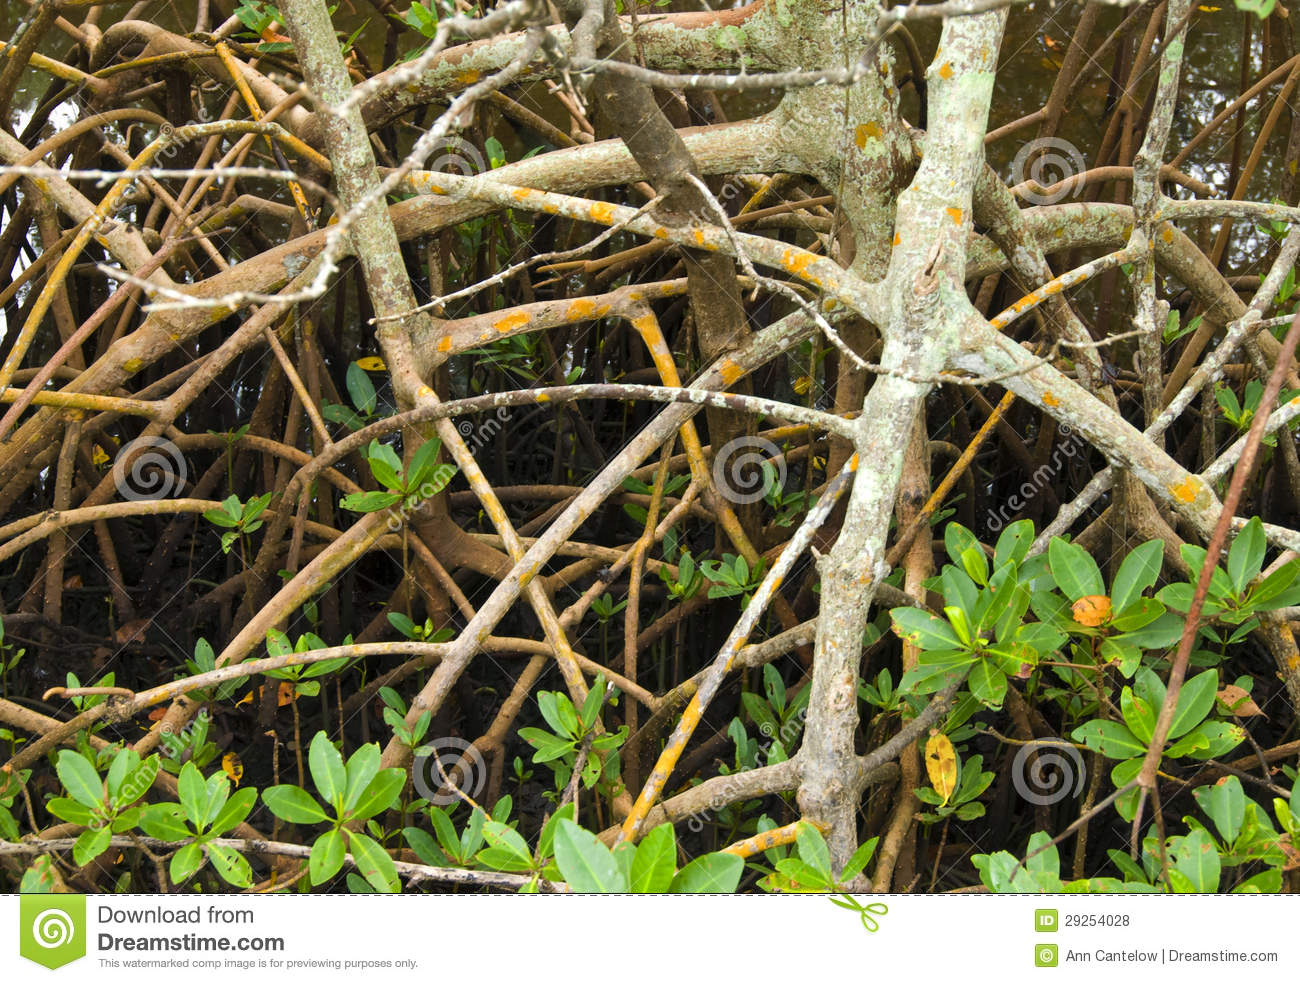 Mangrove Roots and Shoots